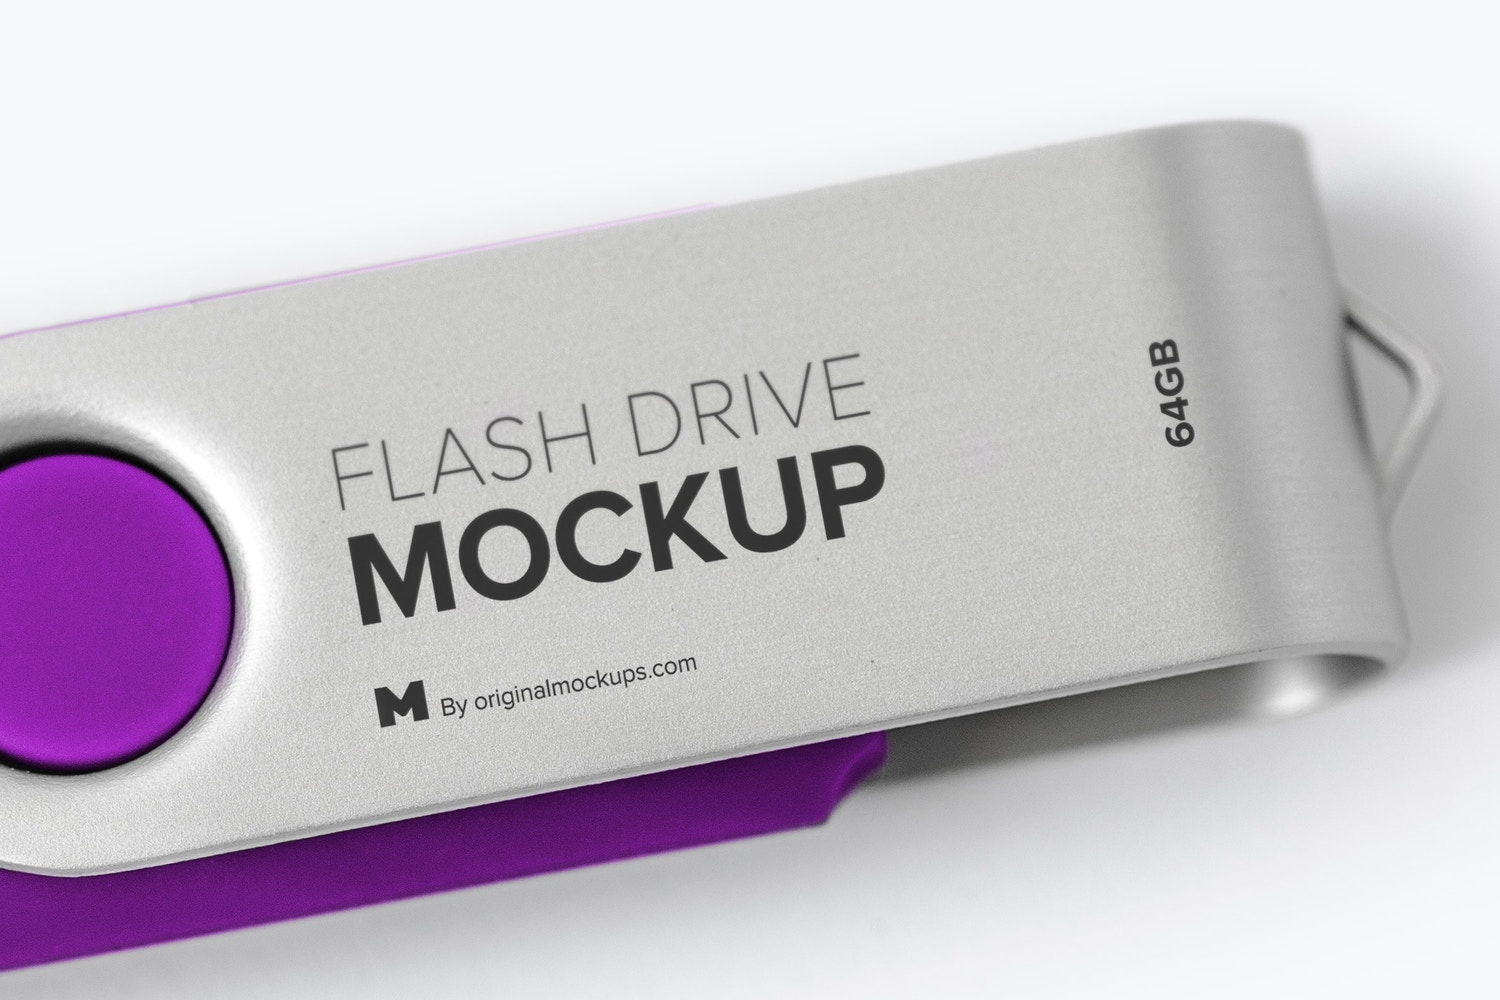 USB Flash Drive Mockup 01